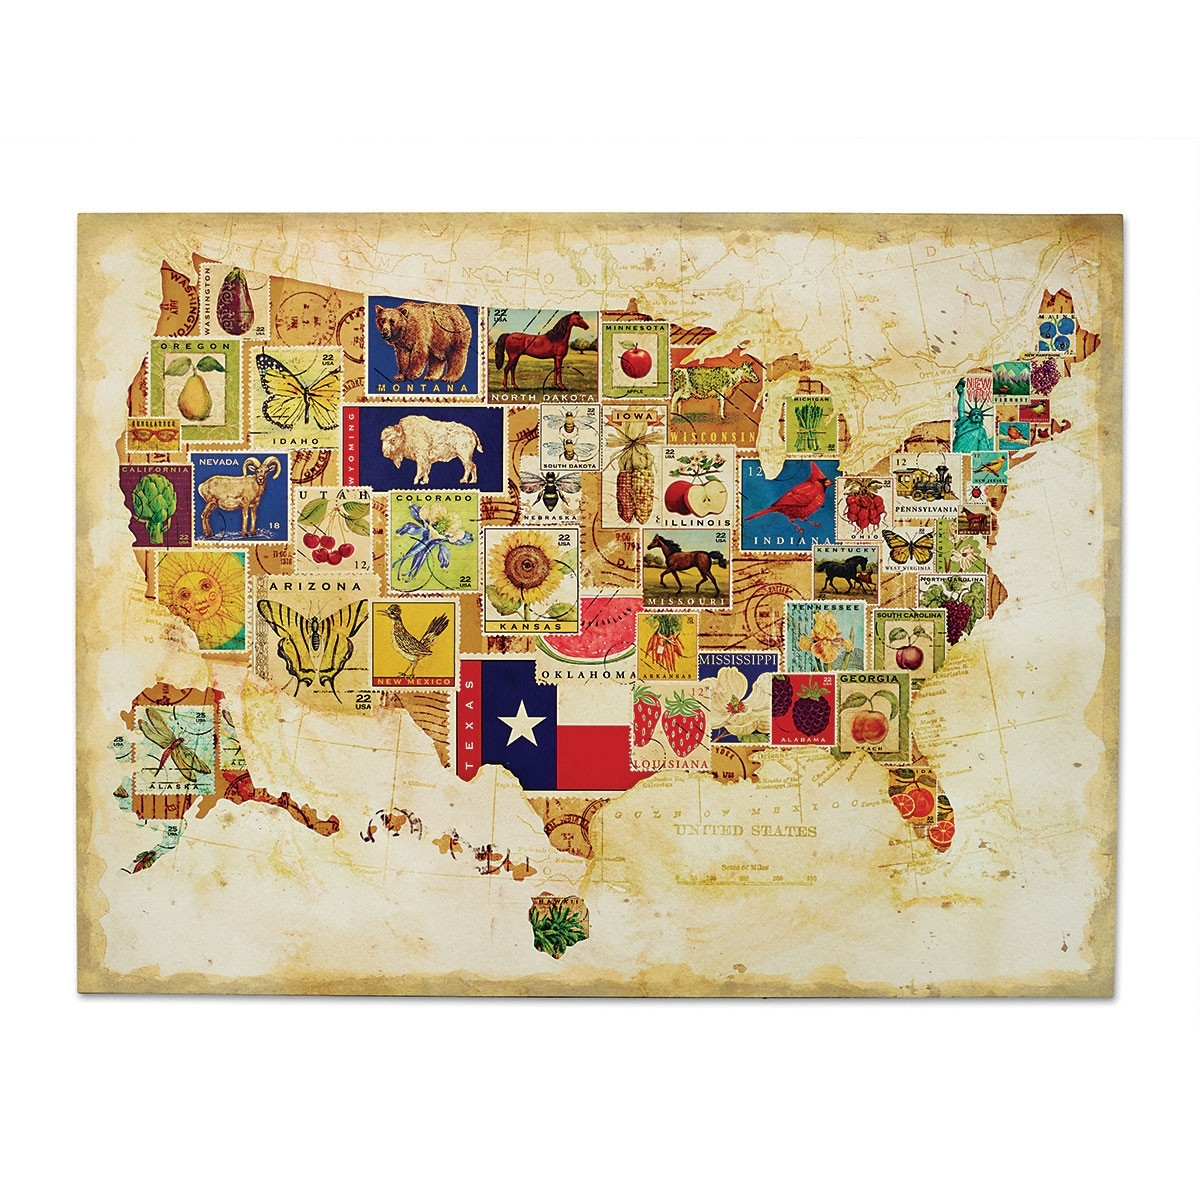 Us Map Wall Art My Blog, Us Map Wall Art – Swinki Morskie Intended For United States Map Wall Art (View 2 of 20)